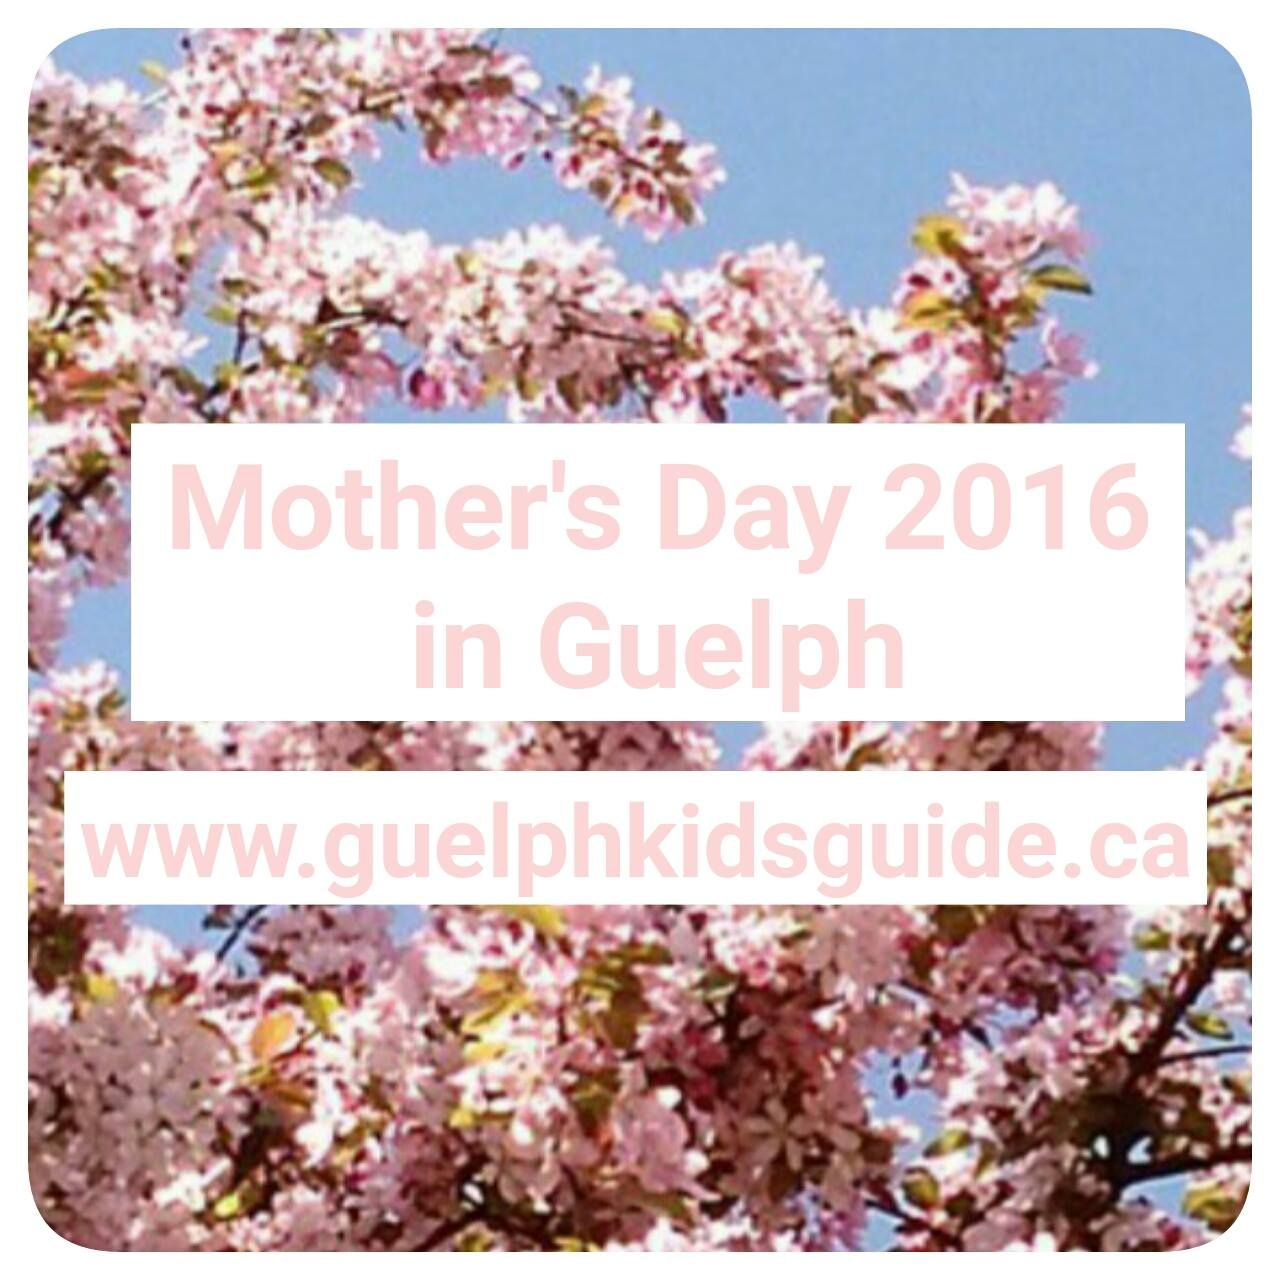 Mother's Day 2016 in Guelph blog